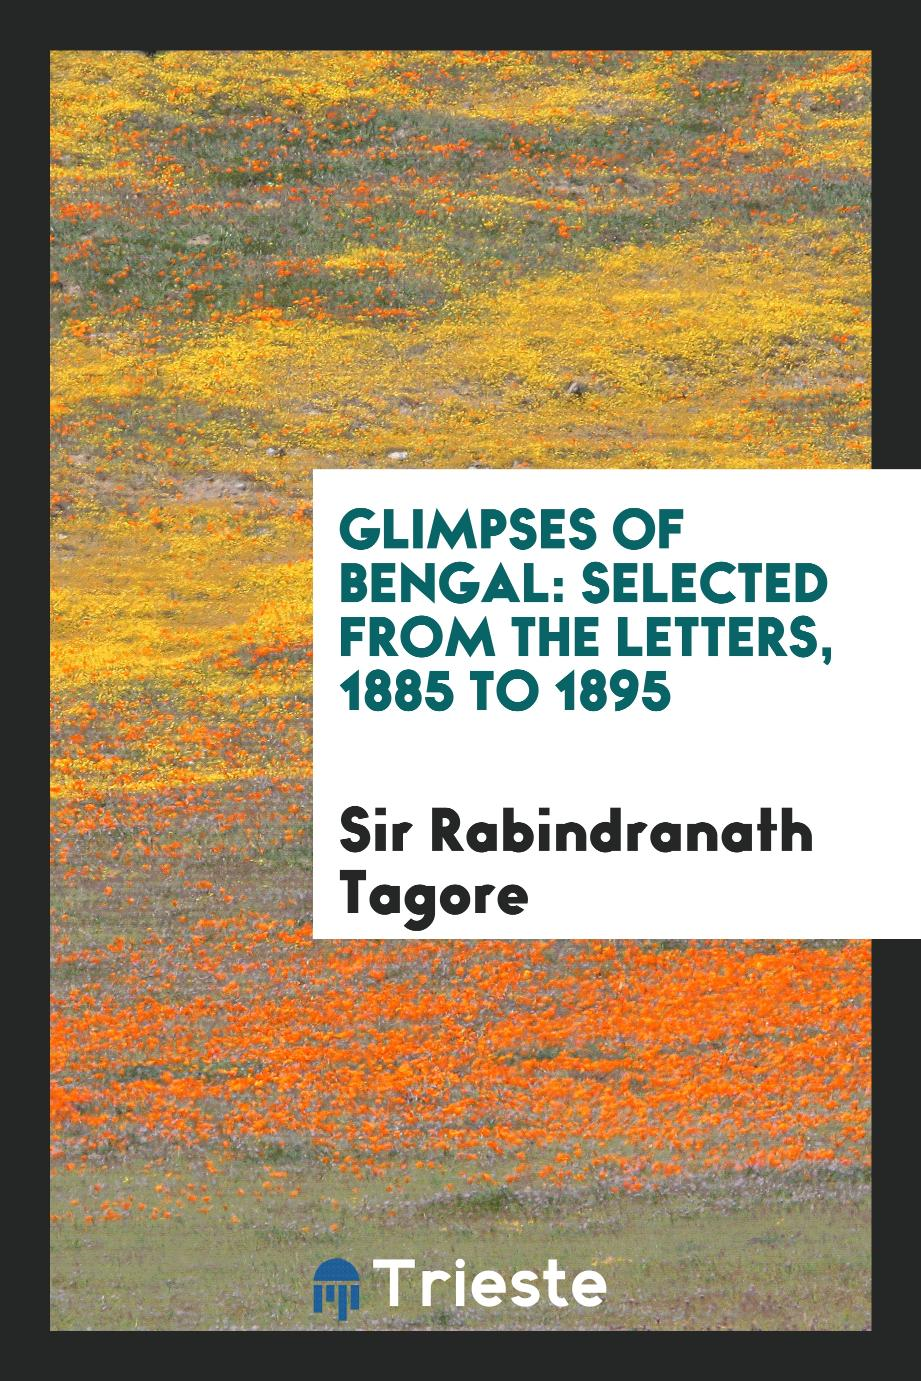 Glimpses of Bengal: Selected from the Letters, 1885 to 1895